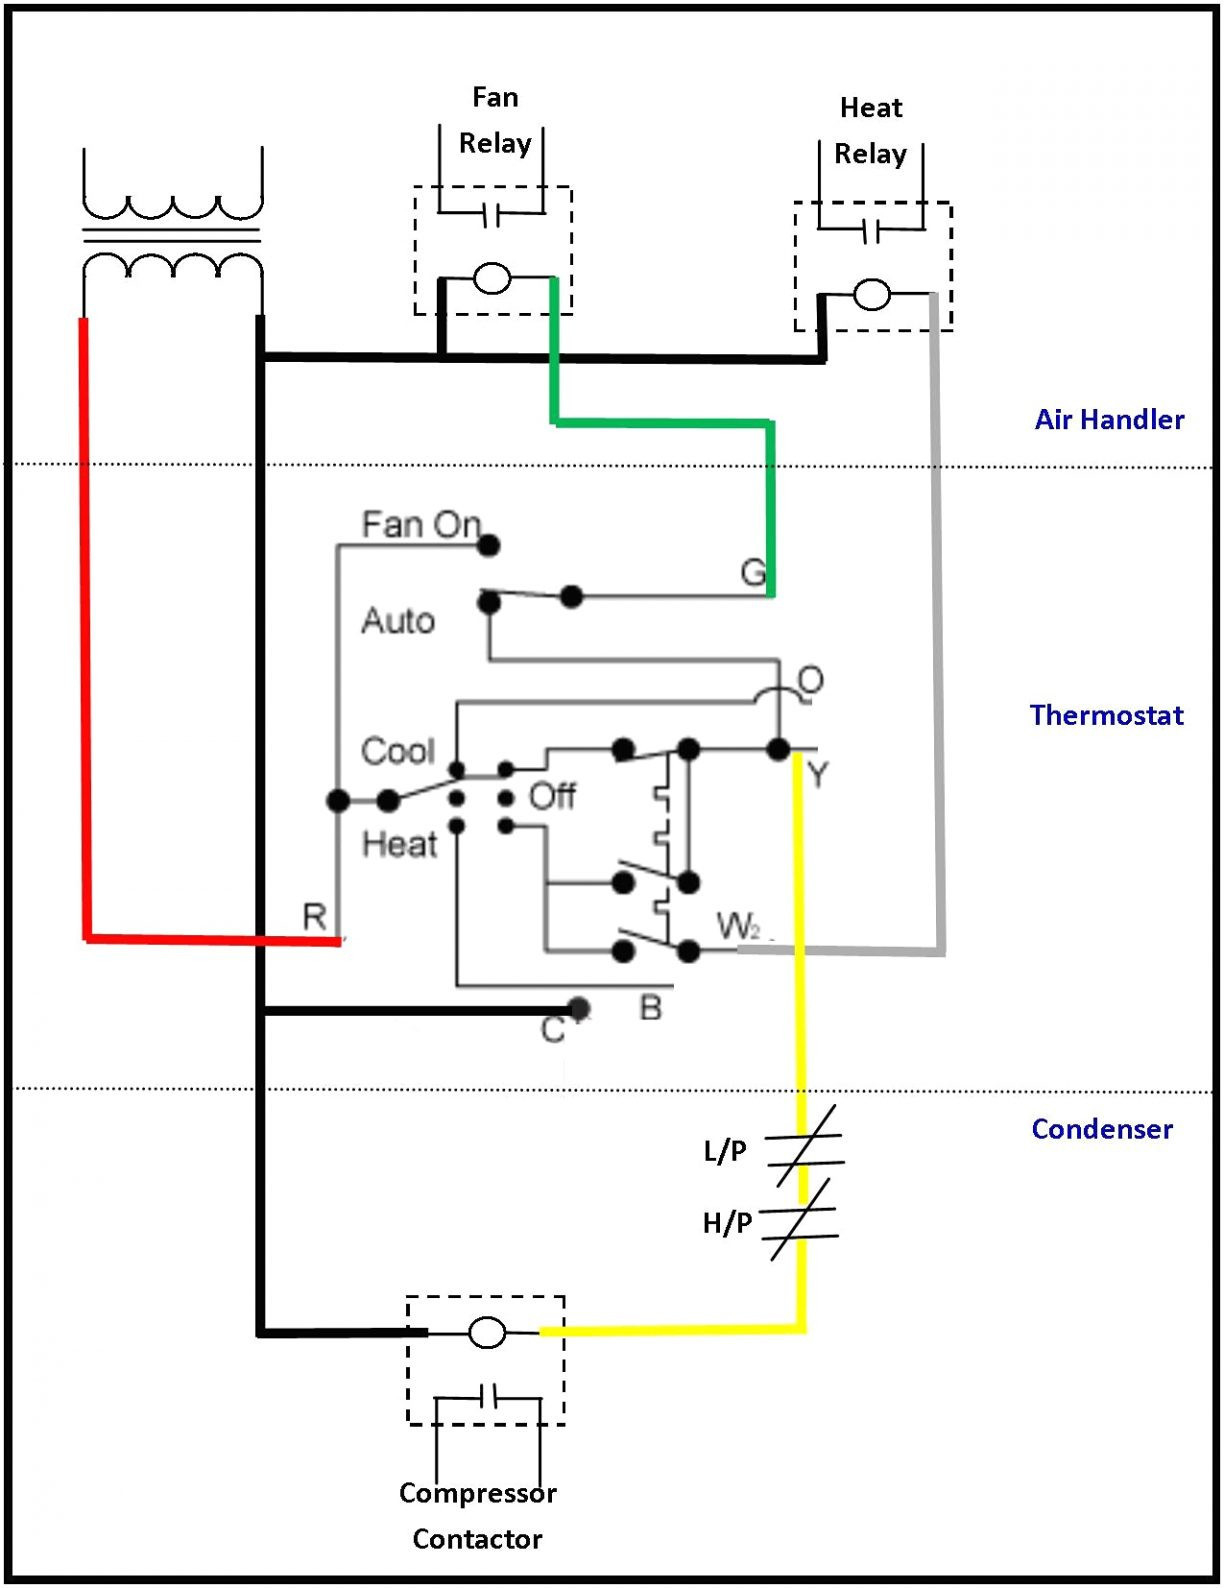 contactor wiring on ac unit schematic diagrams rh ogmconsulting co ac unit wiring colors ac unit wiring